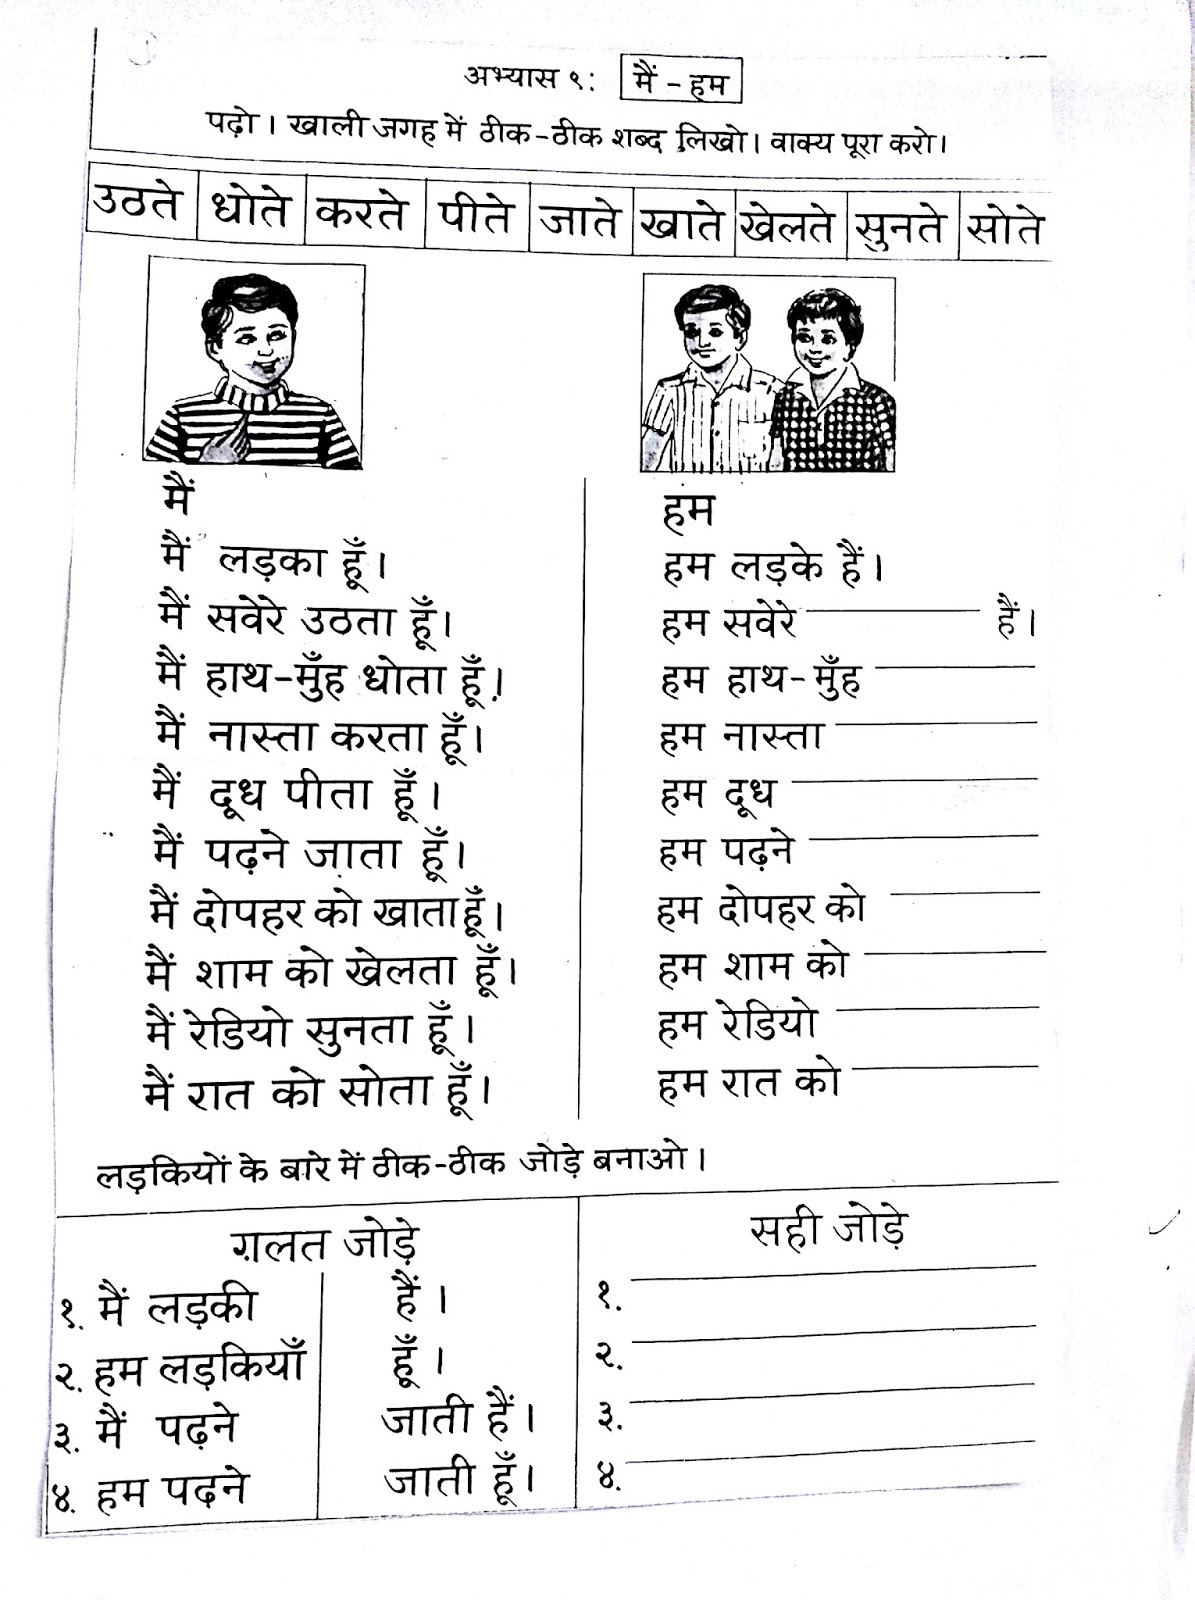 Hindi Grammar Karak Worksheets For Class 6